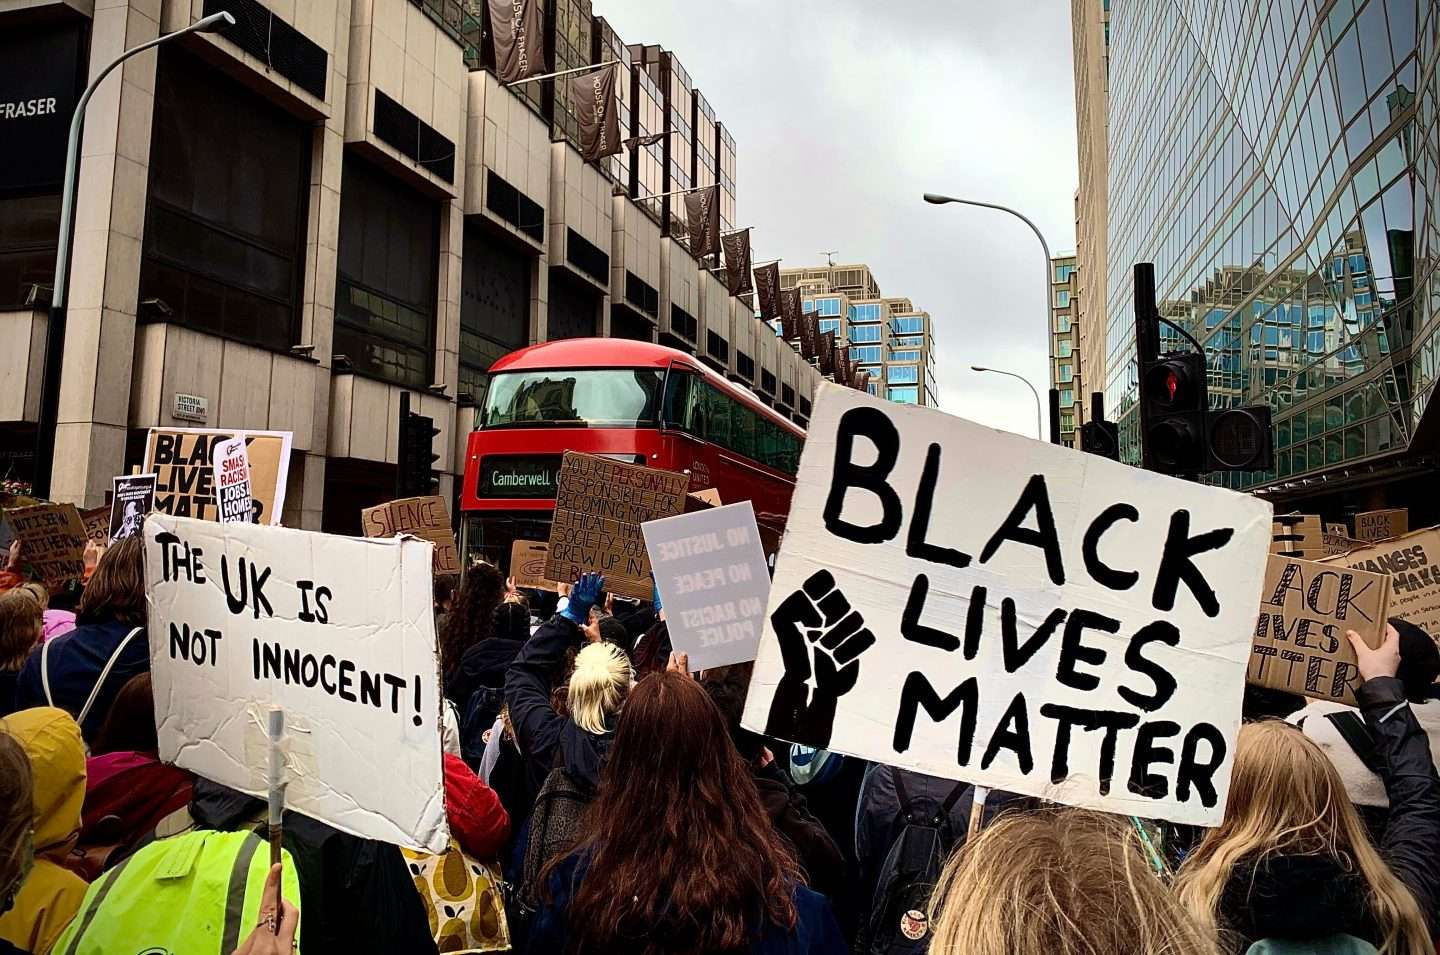 Image from the Black Lives Matter Protest in London 2020